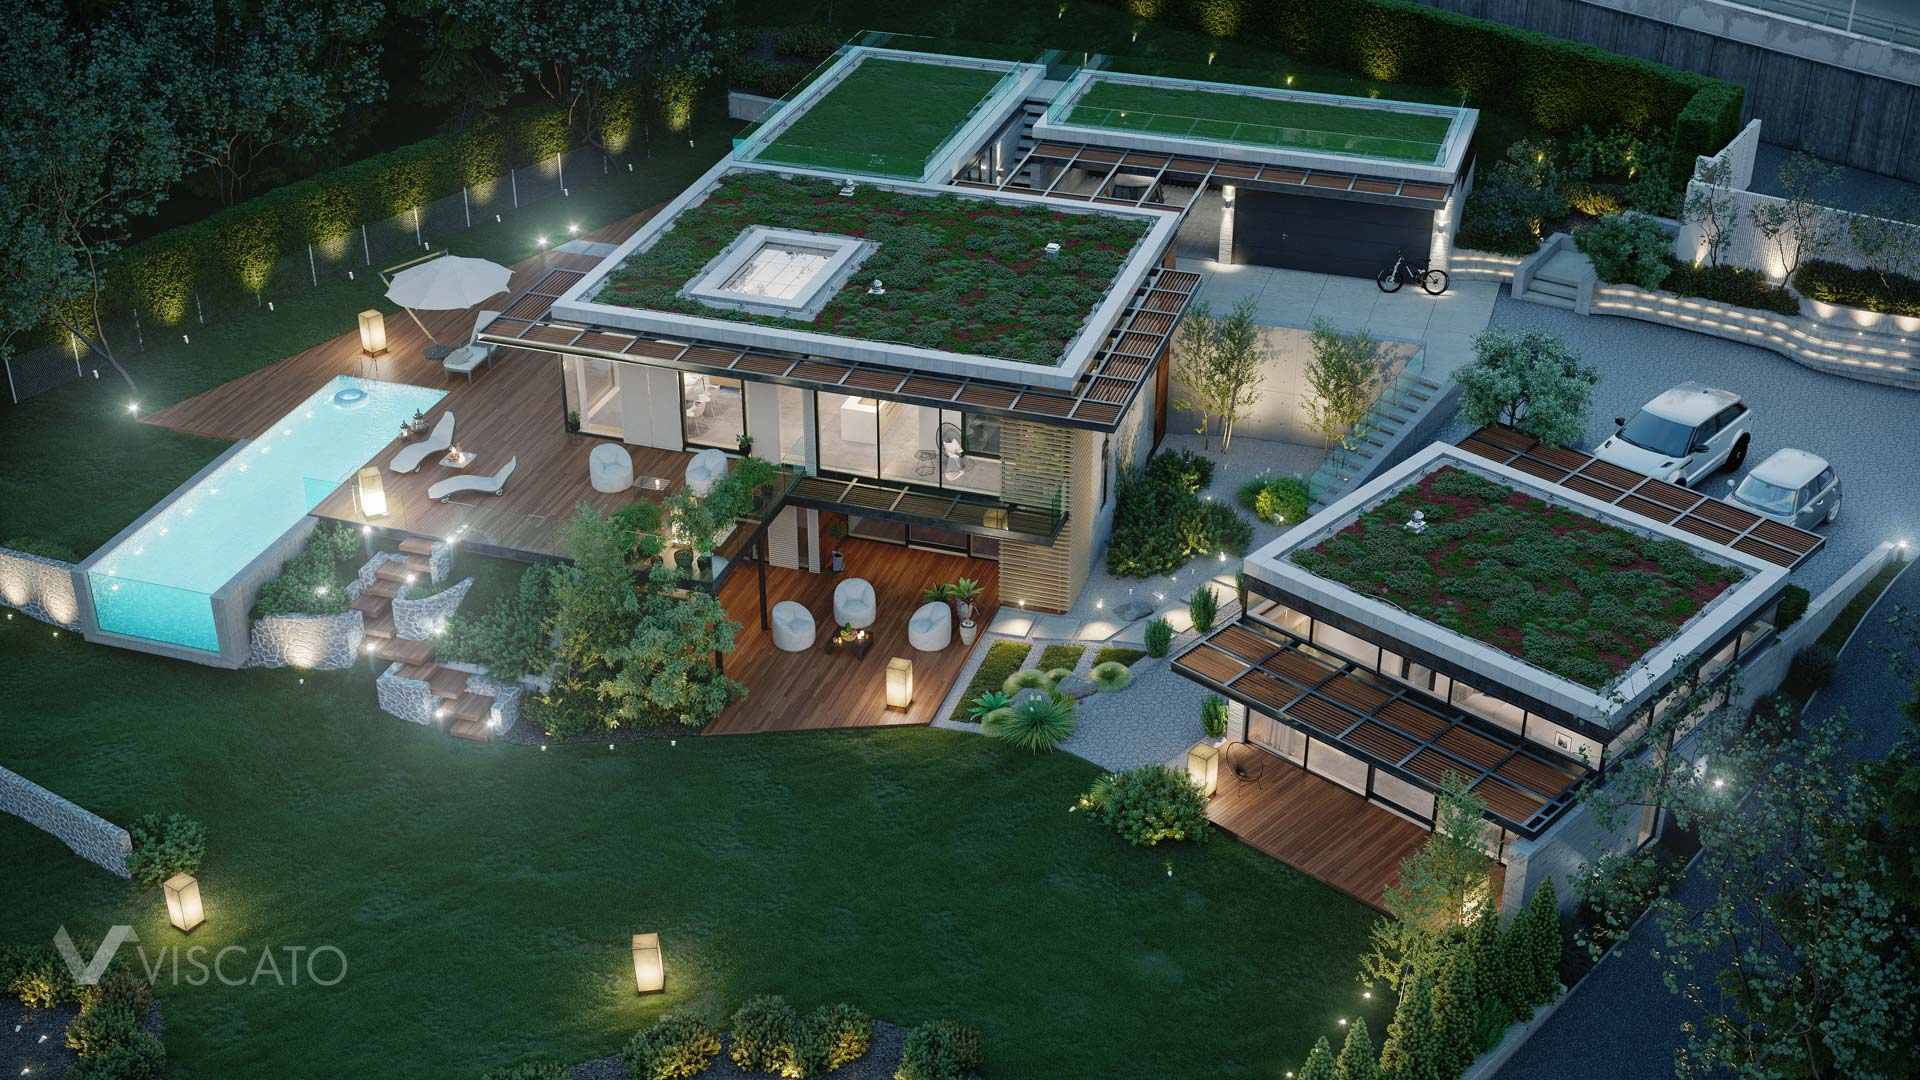 luxurious real estate, Viscato 3d